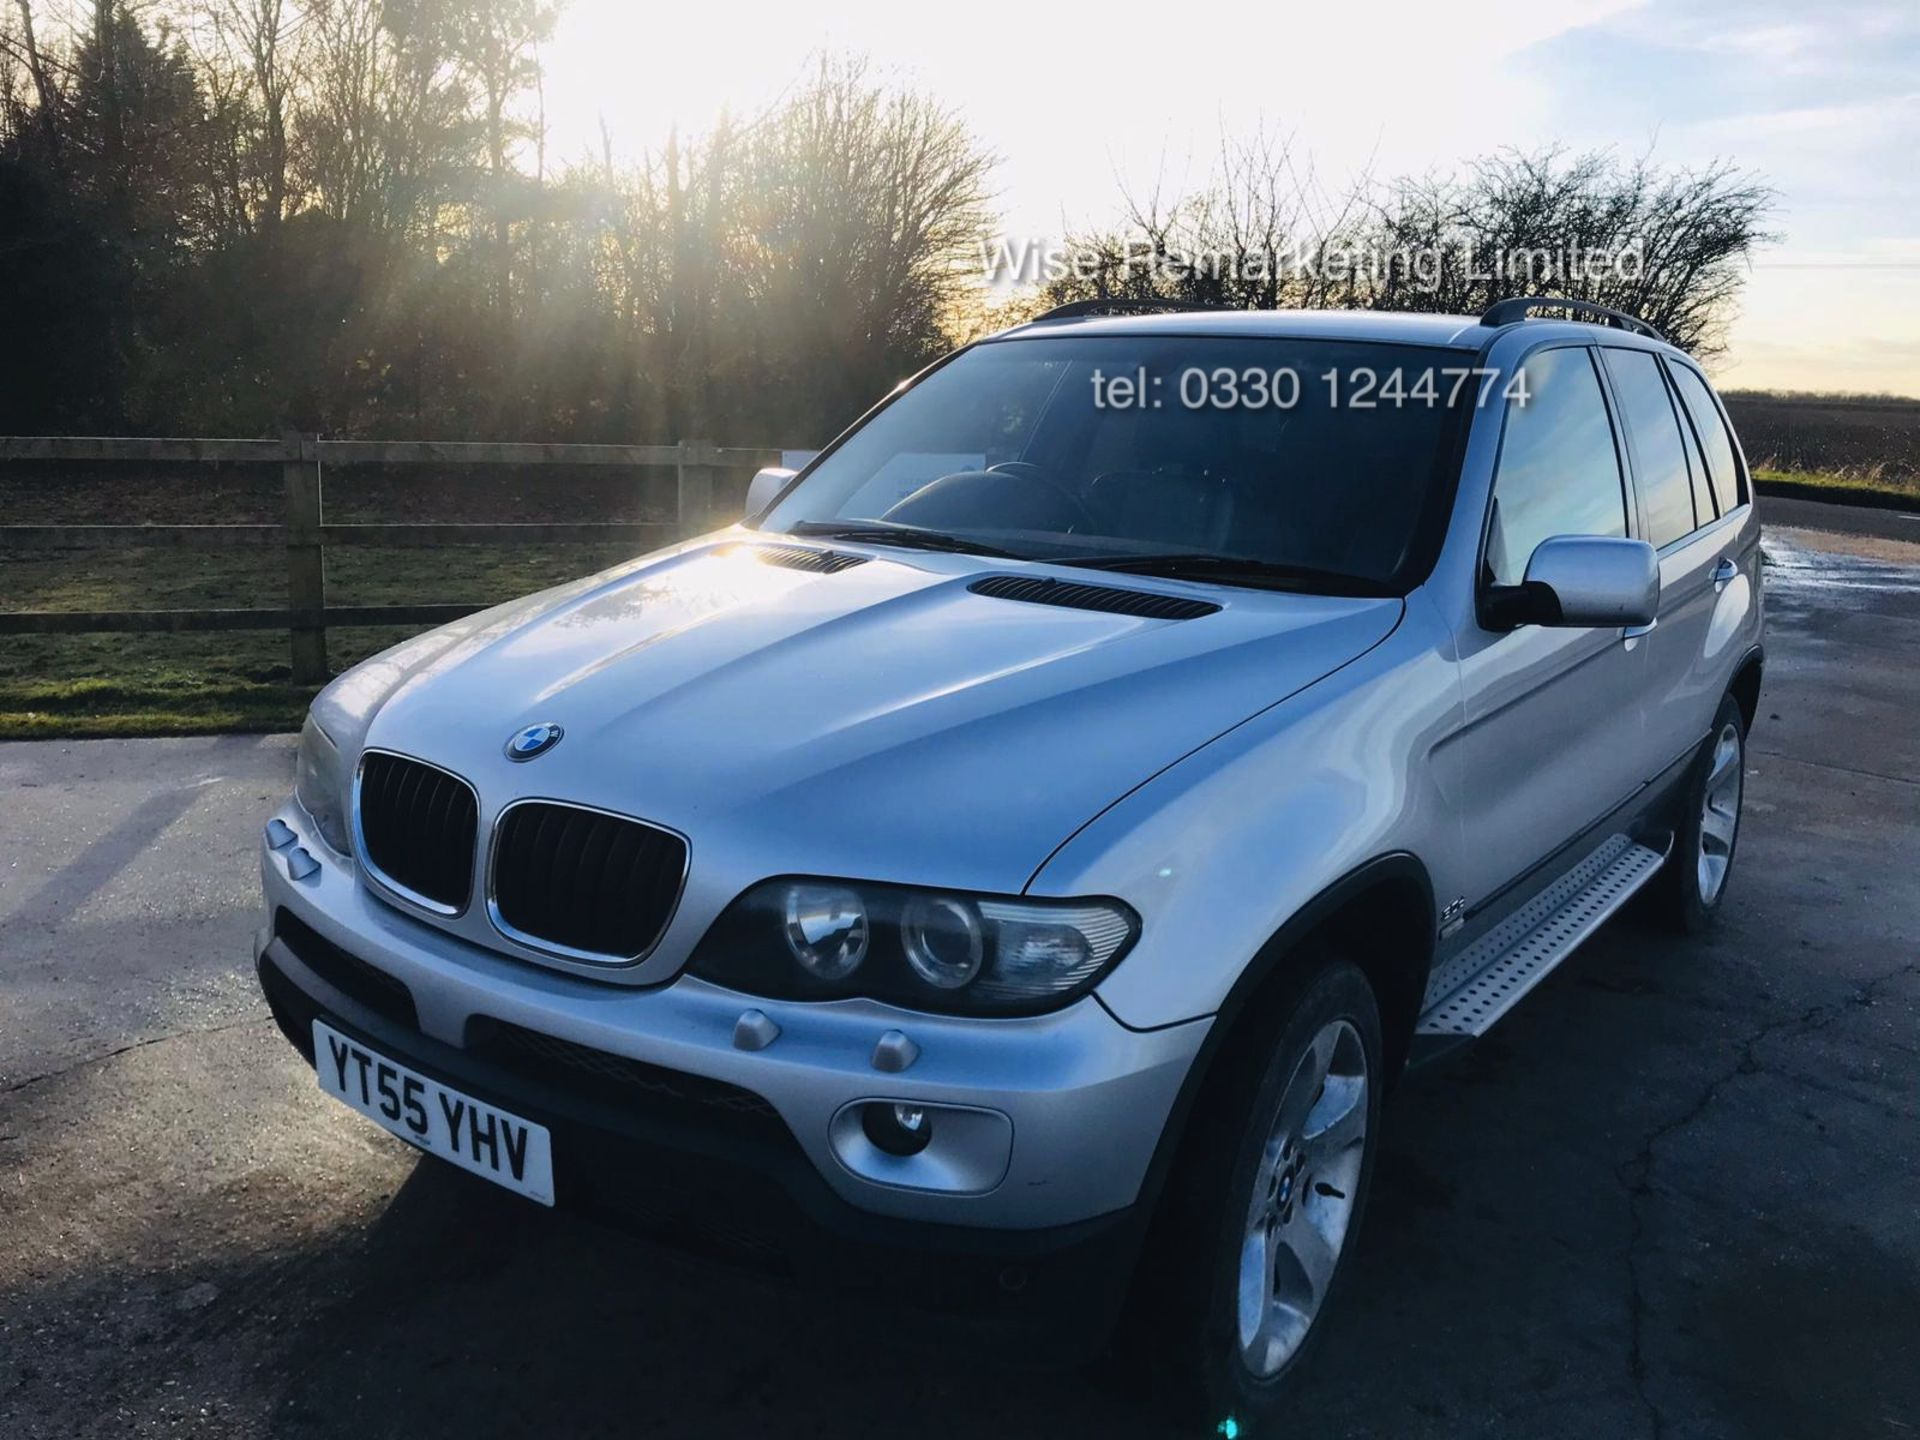 Lot 30 - BMW X5 Sport 3.0d Auto - 2006 Model - Full Leather - Heated Seats - Fully Loaded